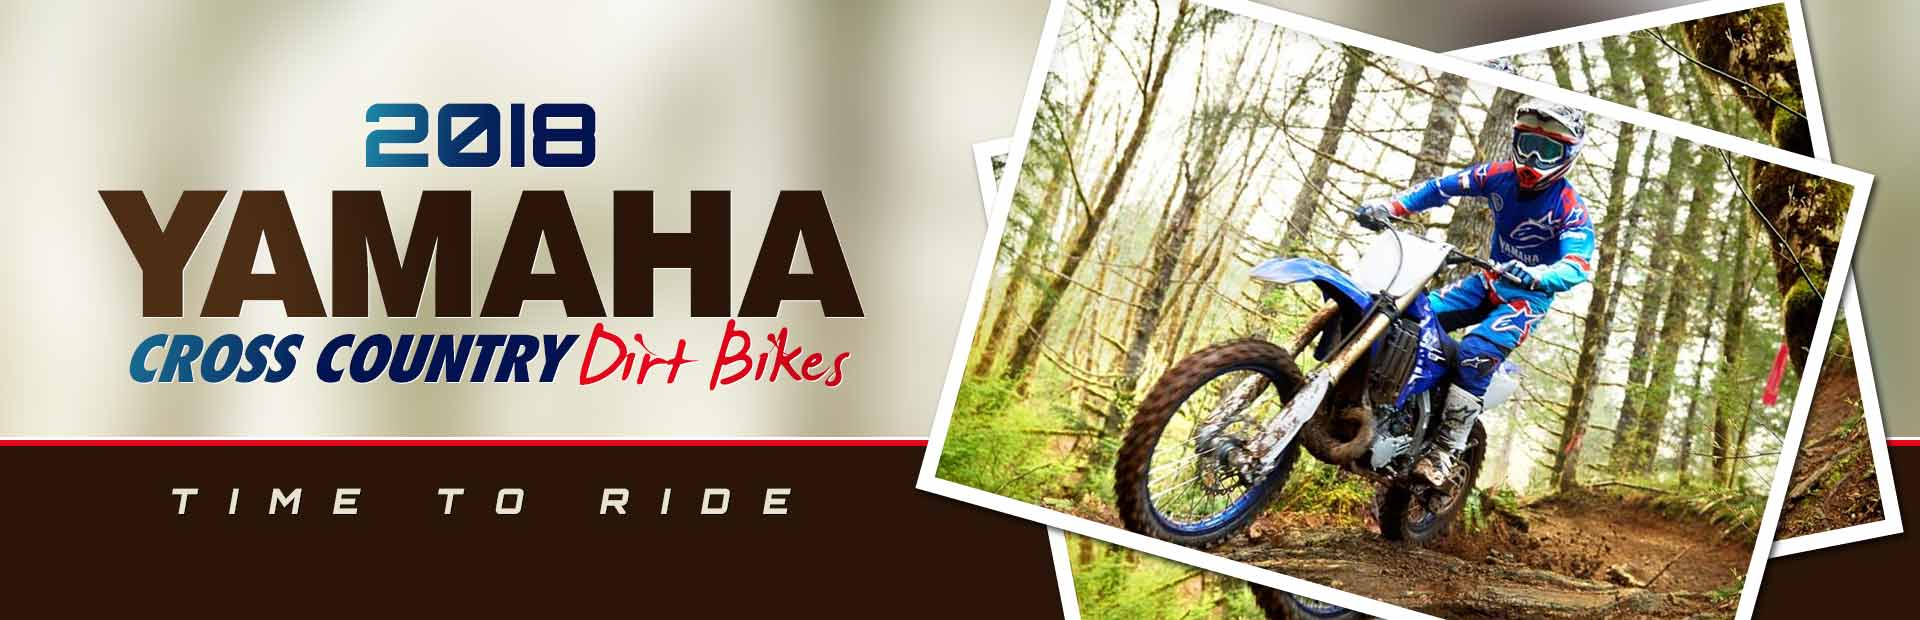 2018 Yamaha Cross Country Dirt Bikes: Click here to view the models.